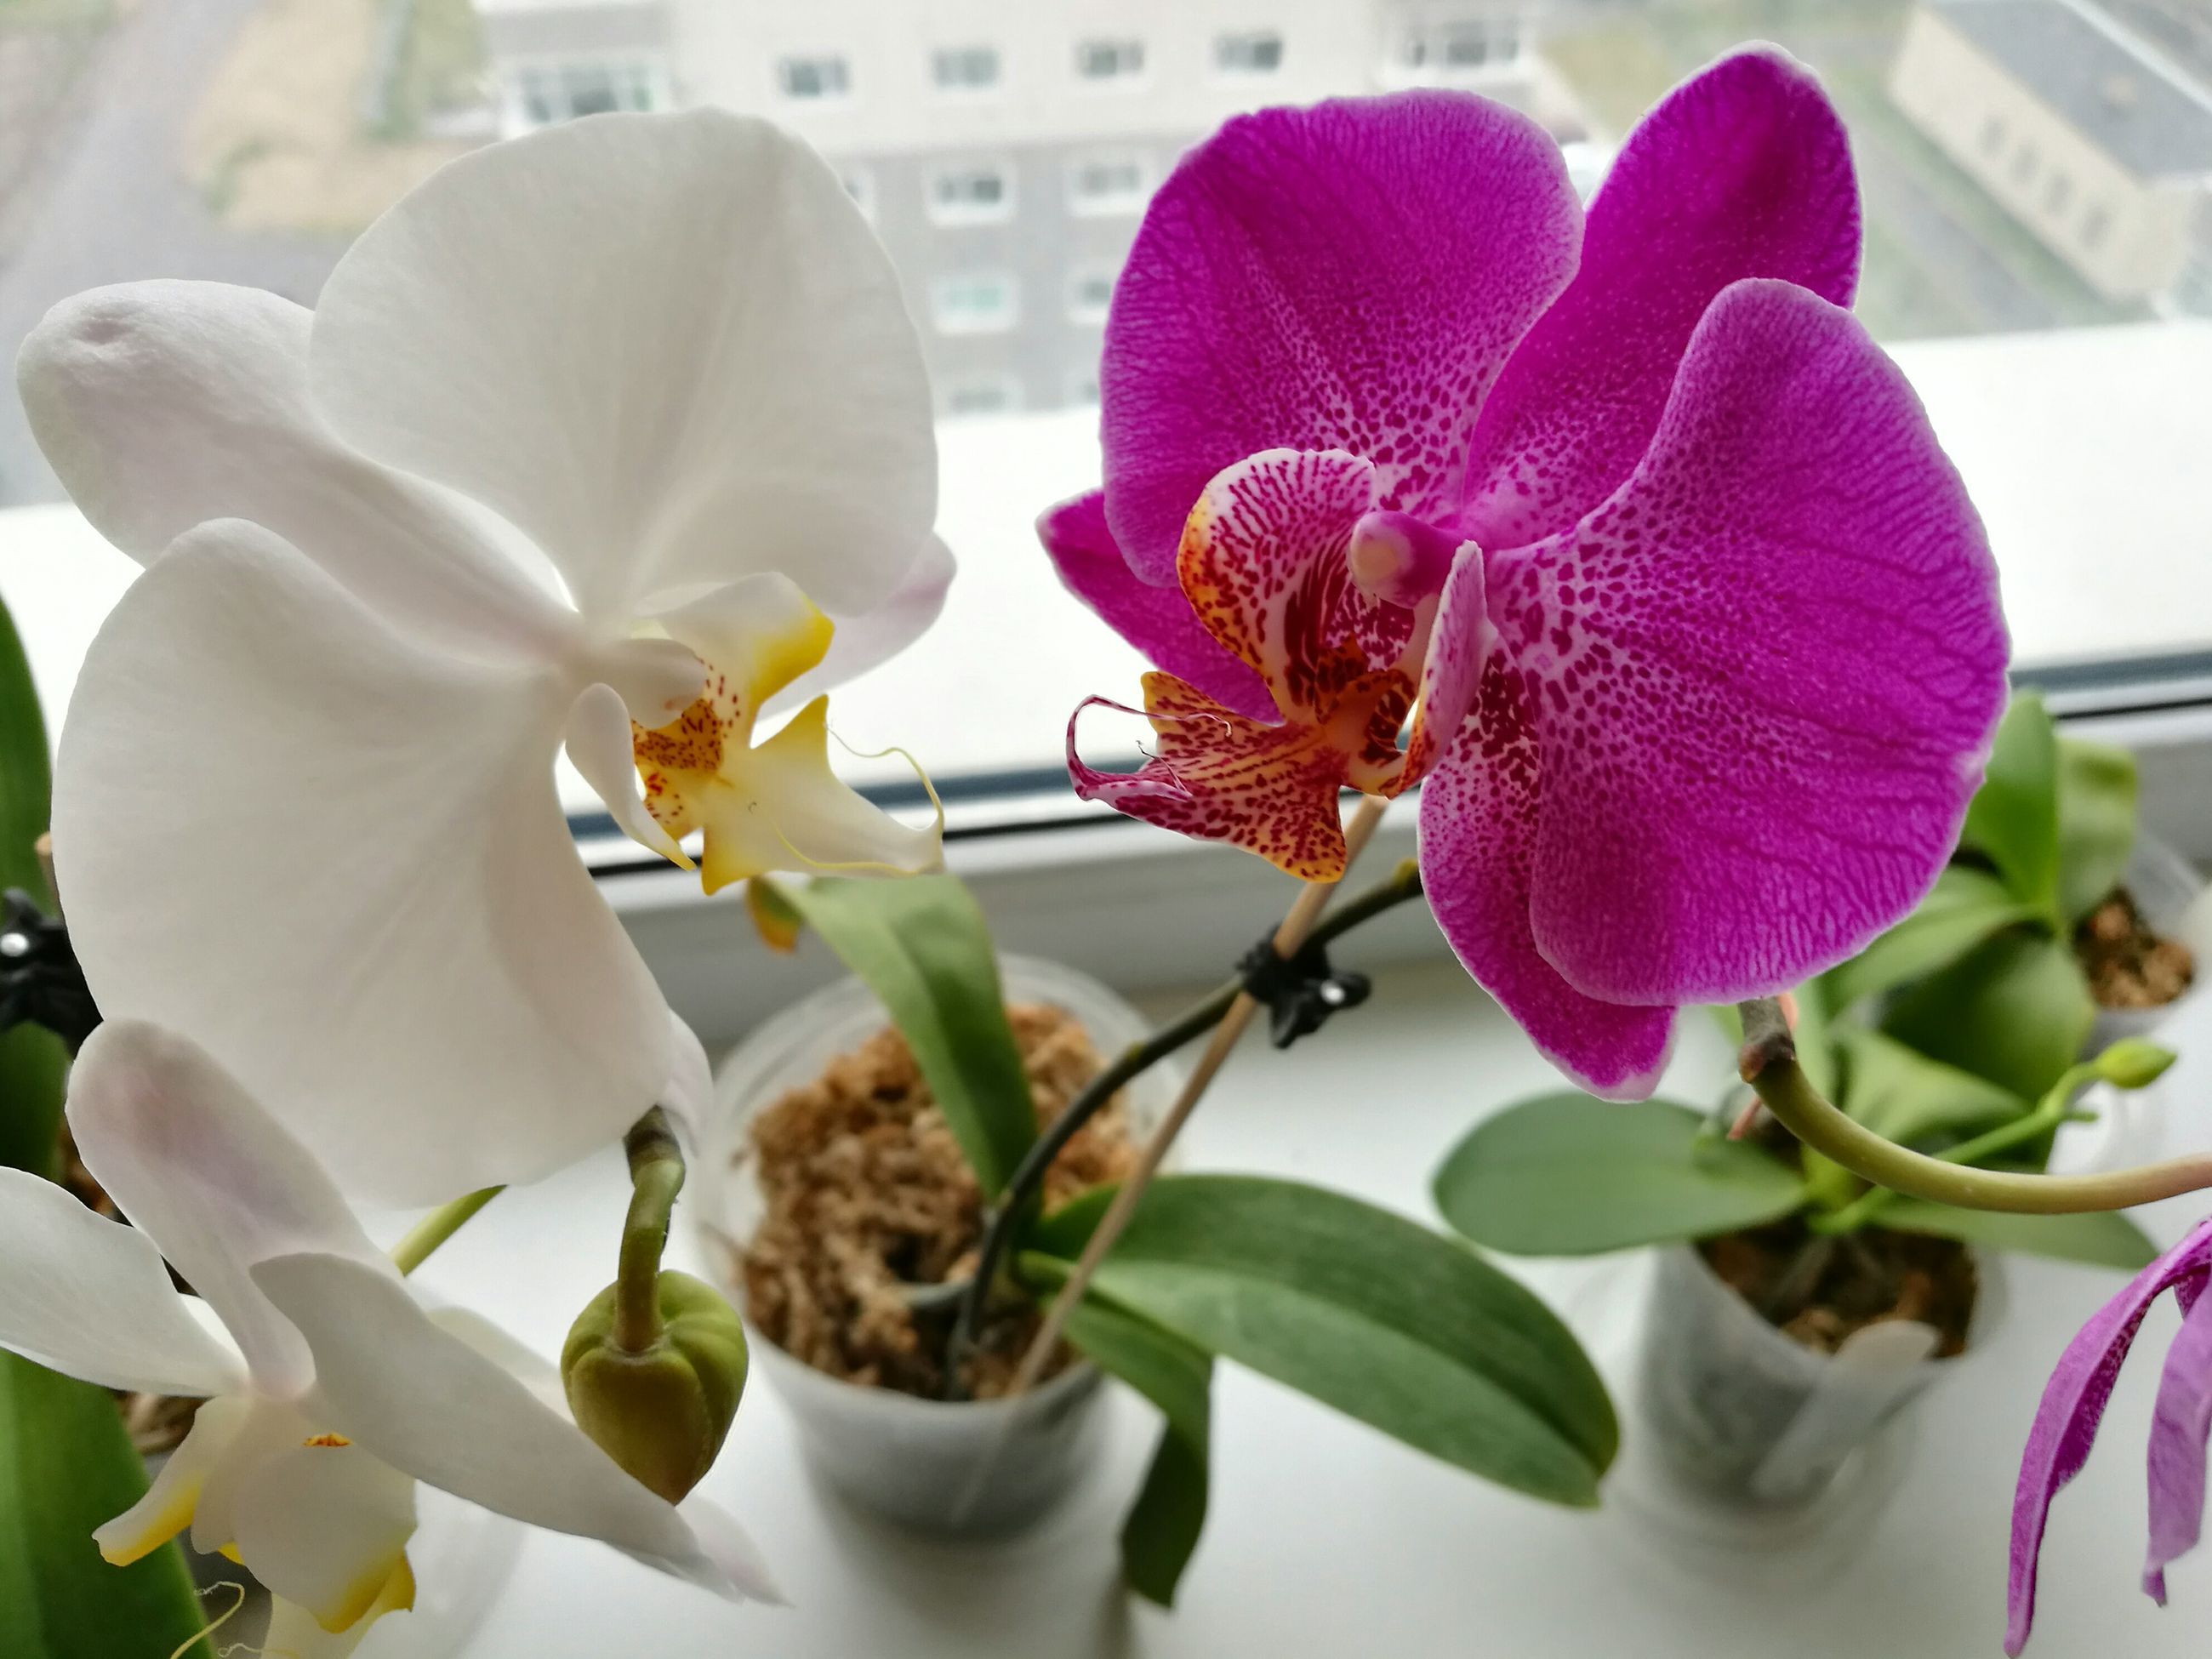 flower, petal, freshness, flower head, fragility, close-up, beauty in nature, orchid, growth, nature, purple, plant, stamen, pollen, blooming, focus on foreground, no people, in bloom, stem, botany, blossom, pink color, day, softness, selective focus